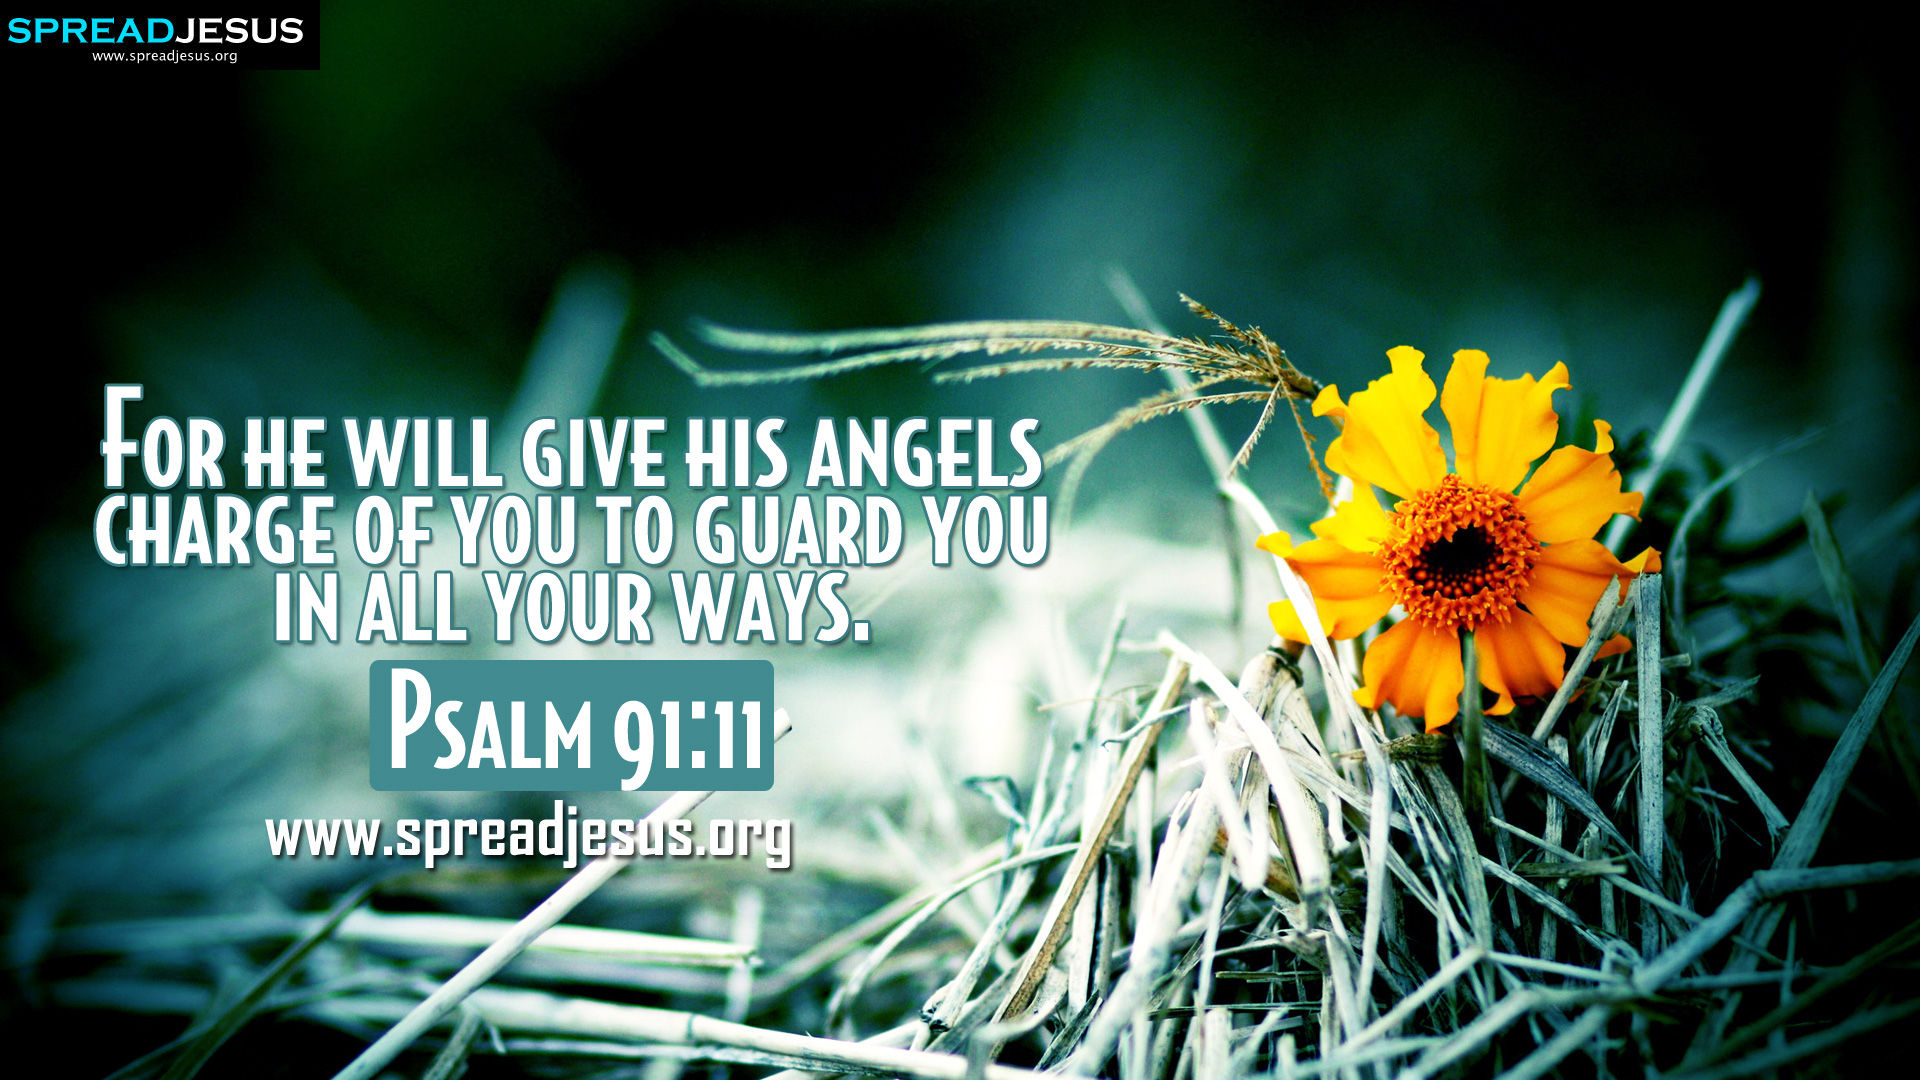 Encouraging Quotes Wallpaper Free Download Psalm 91 11 Bible Quotes Hd Wallpapers Free Download